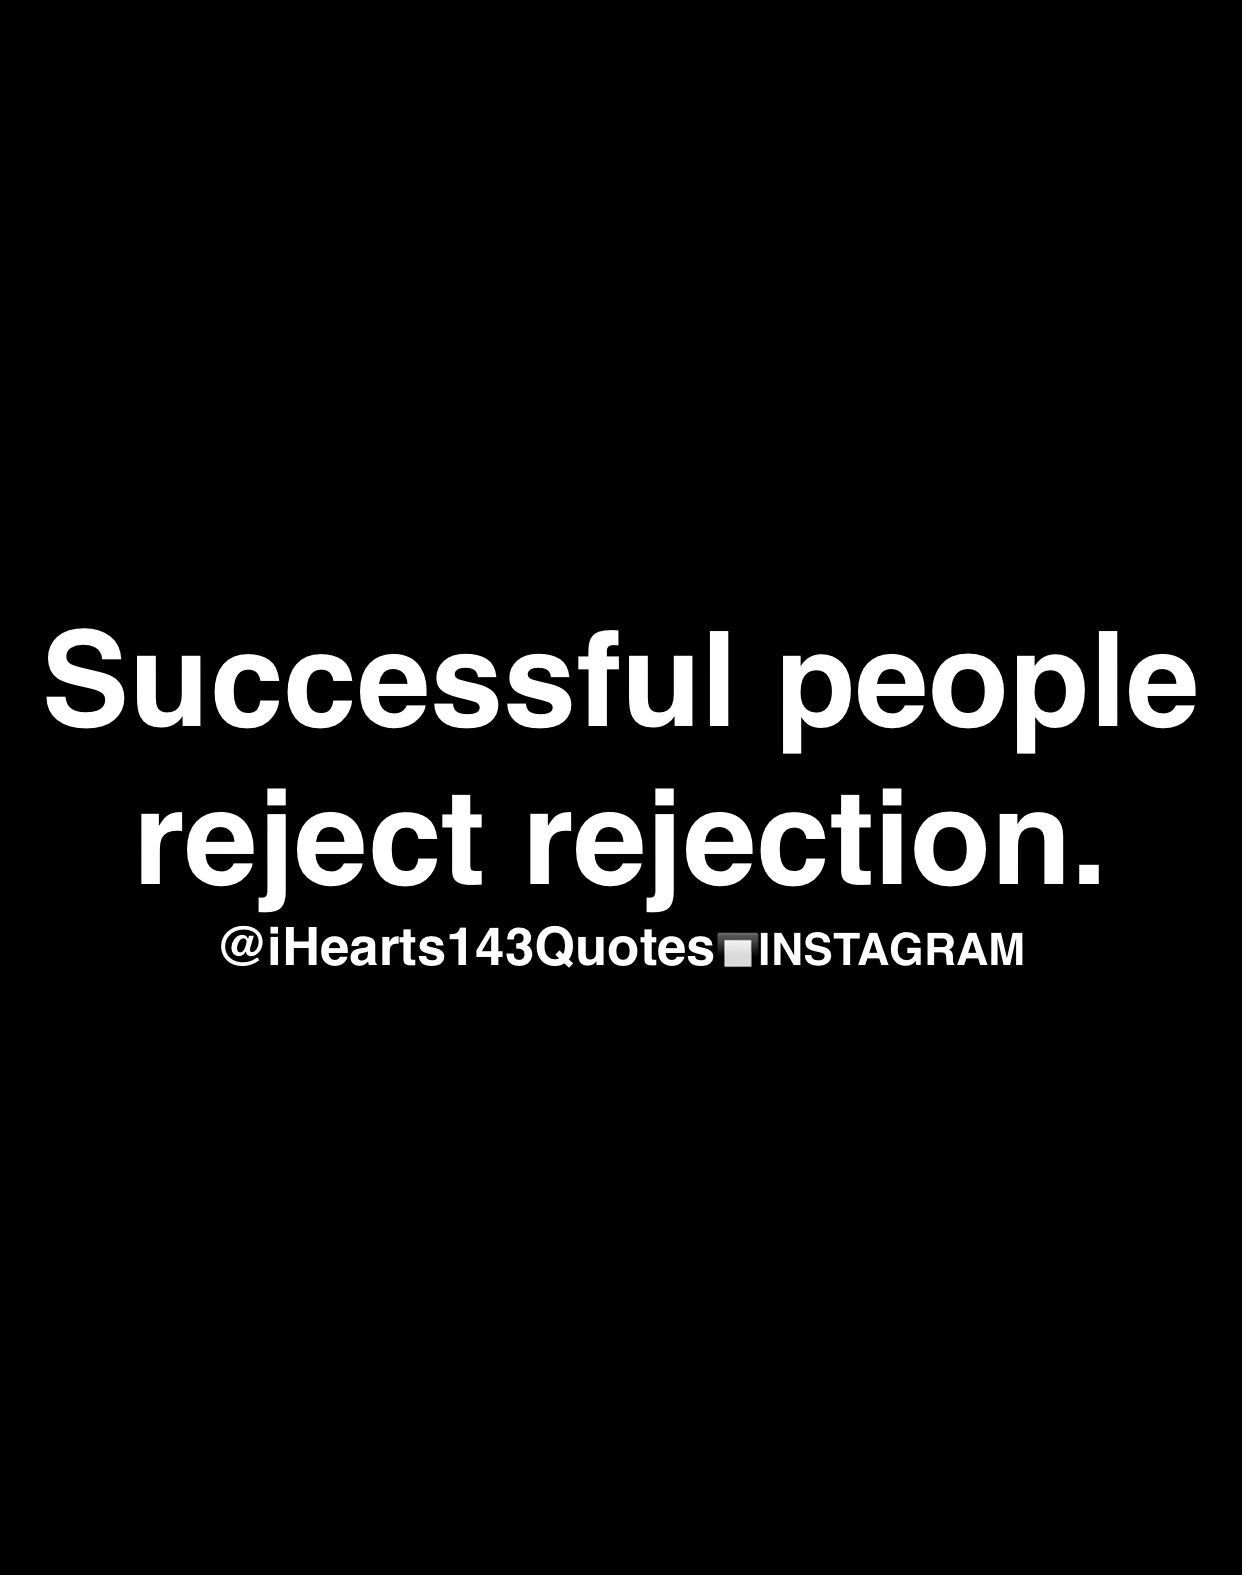 Quotes About Rejection : quotes, about, rejection, Inspirational, Quotes, Rejection, Richi, Quote